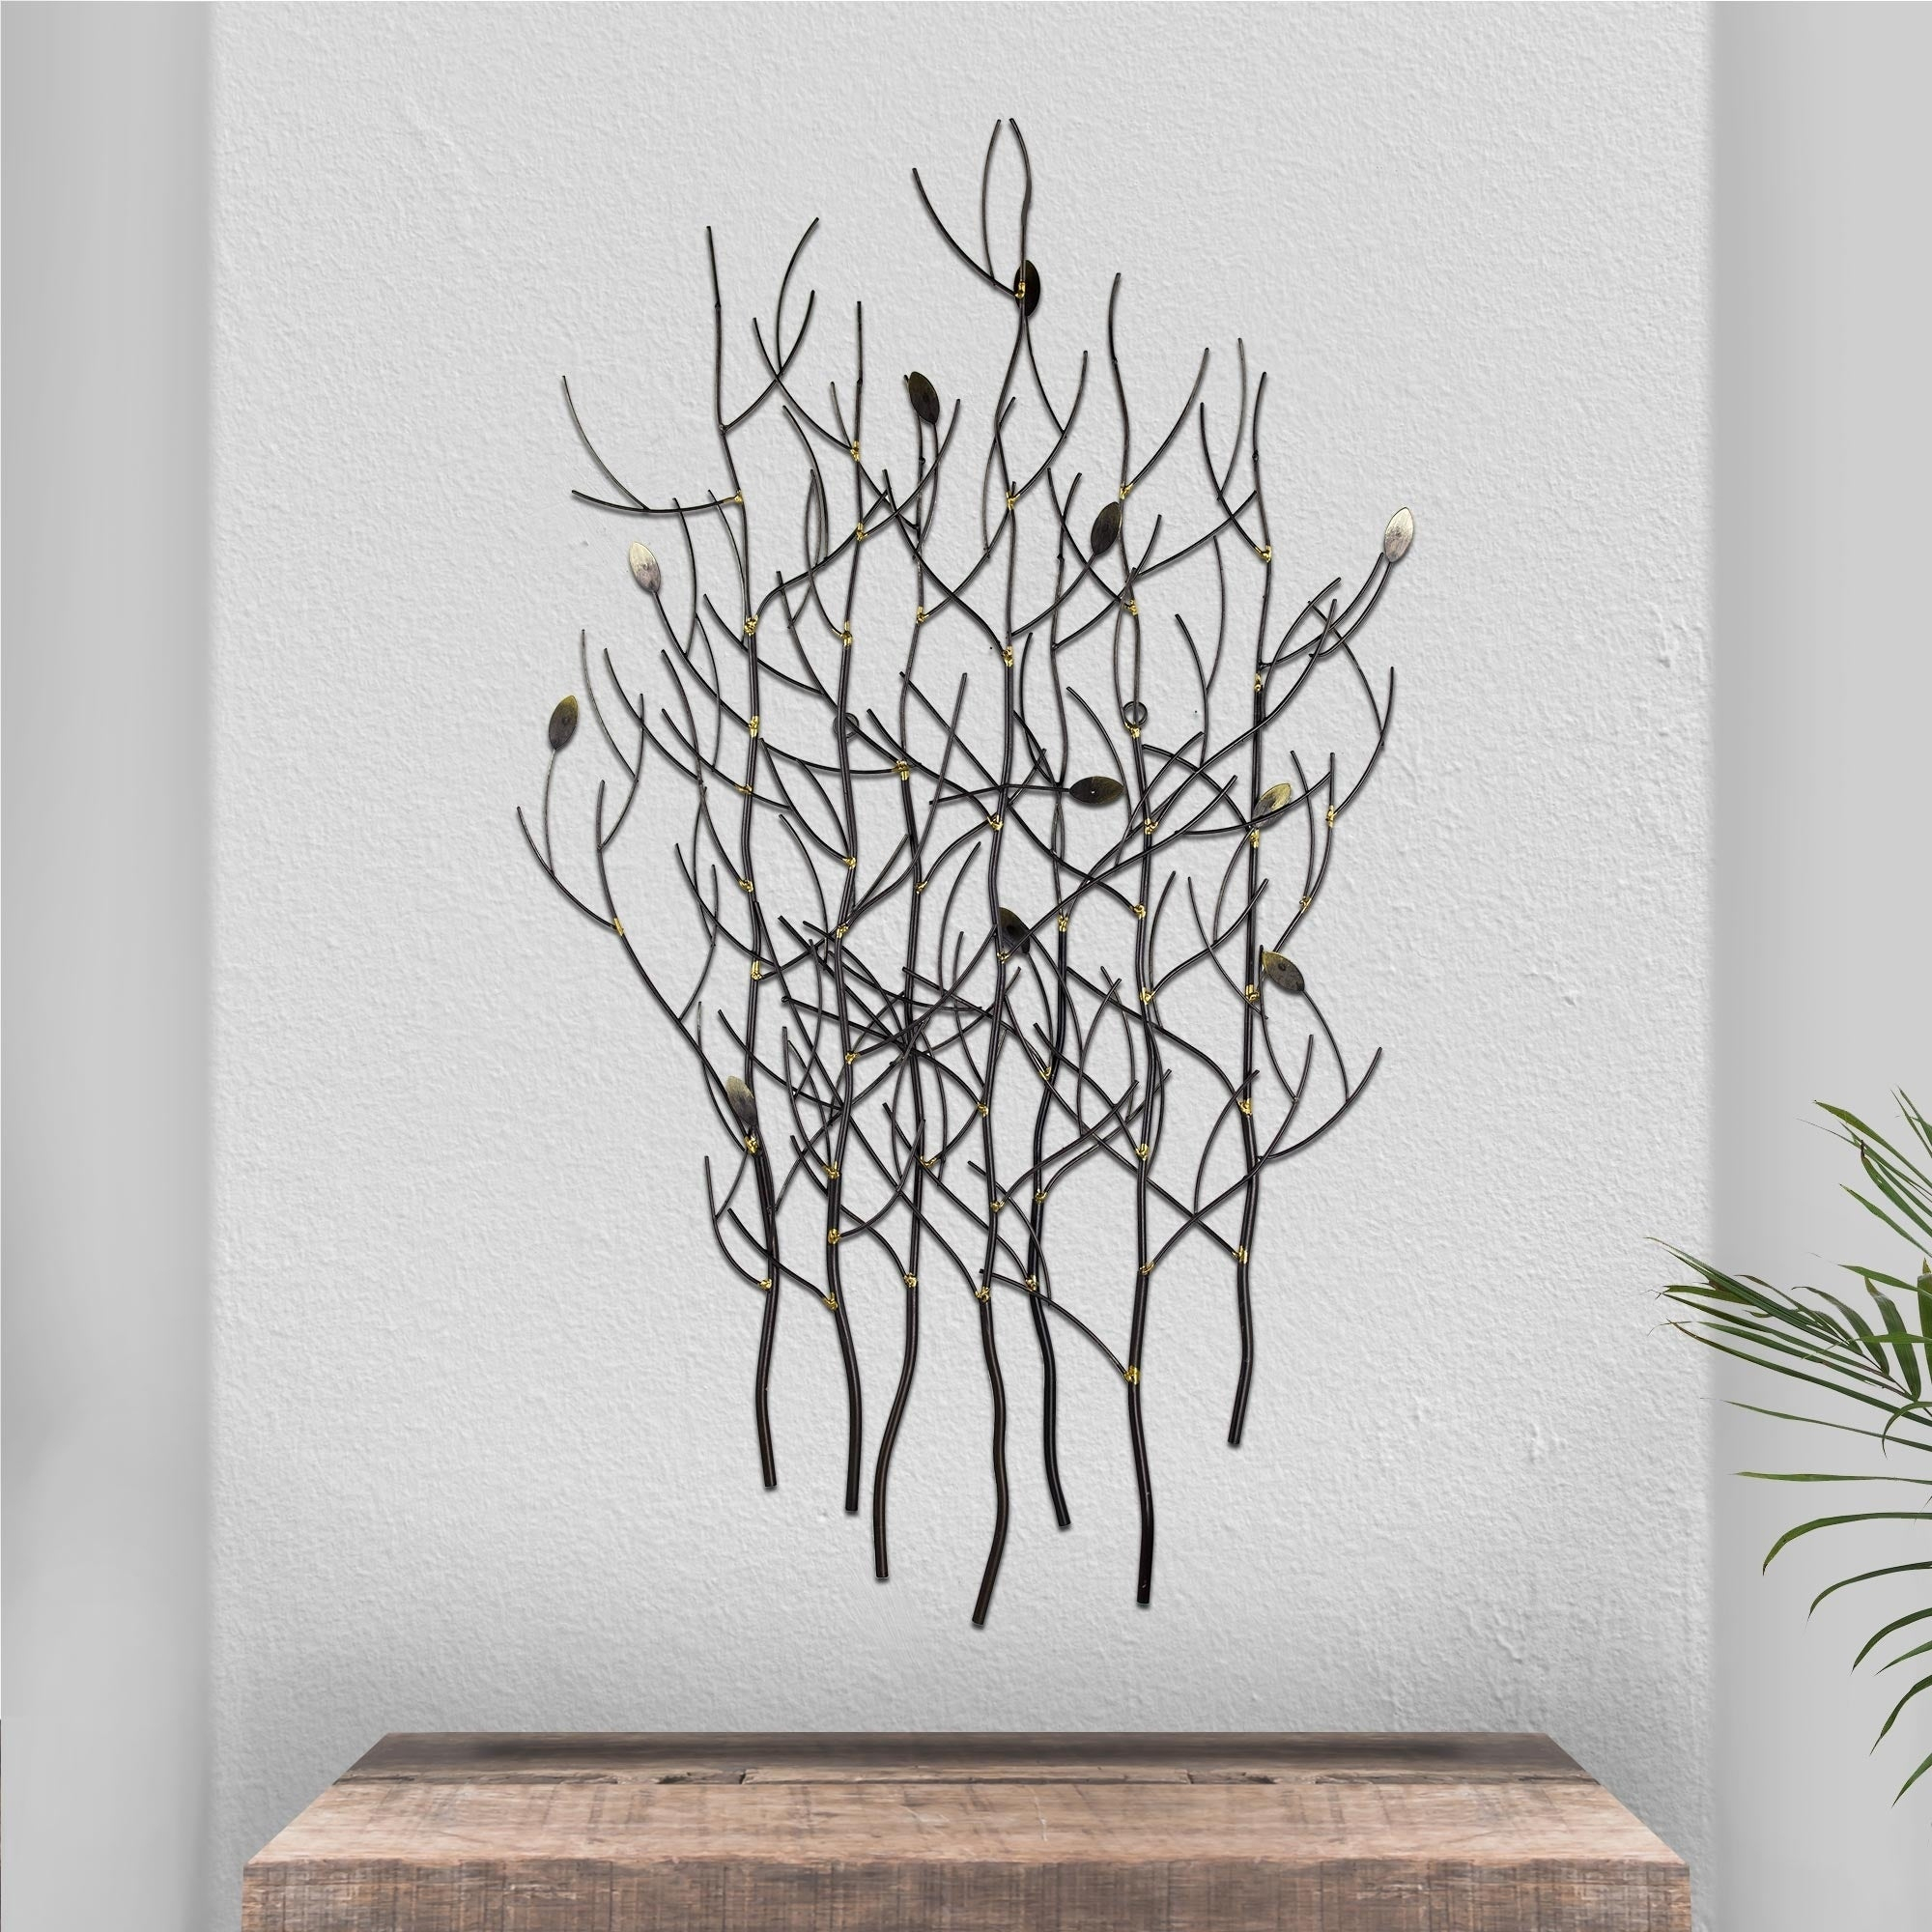 Discontinued - Silver Branches Gold Leaves Metal Sculpture Wall Art Decor  Accent intended for Leaves Metal Sculpture Wall Decor (Image 14 of 30)